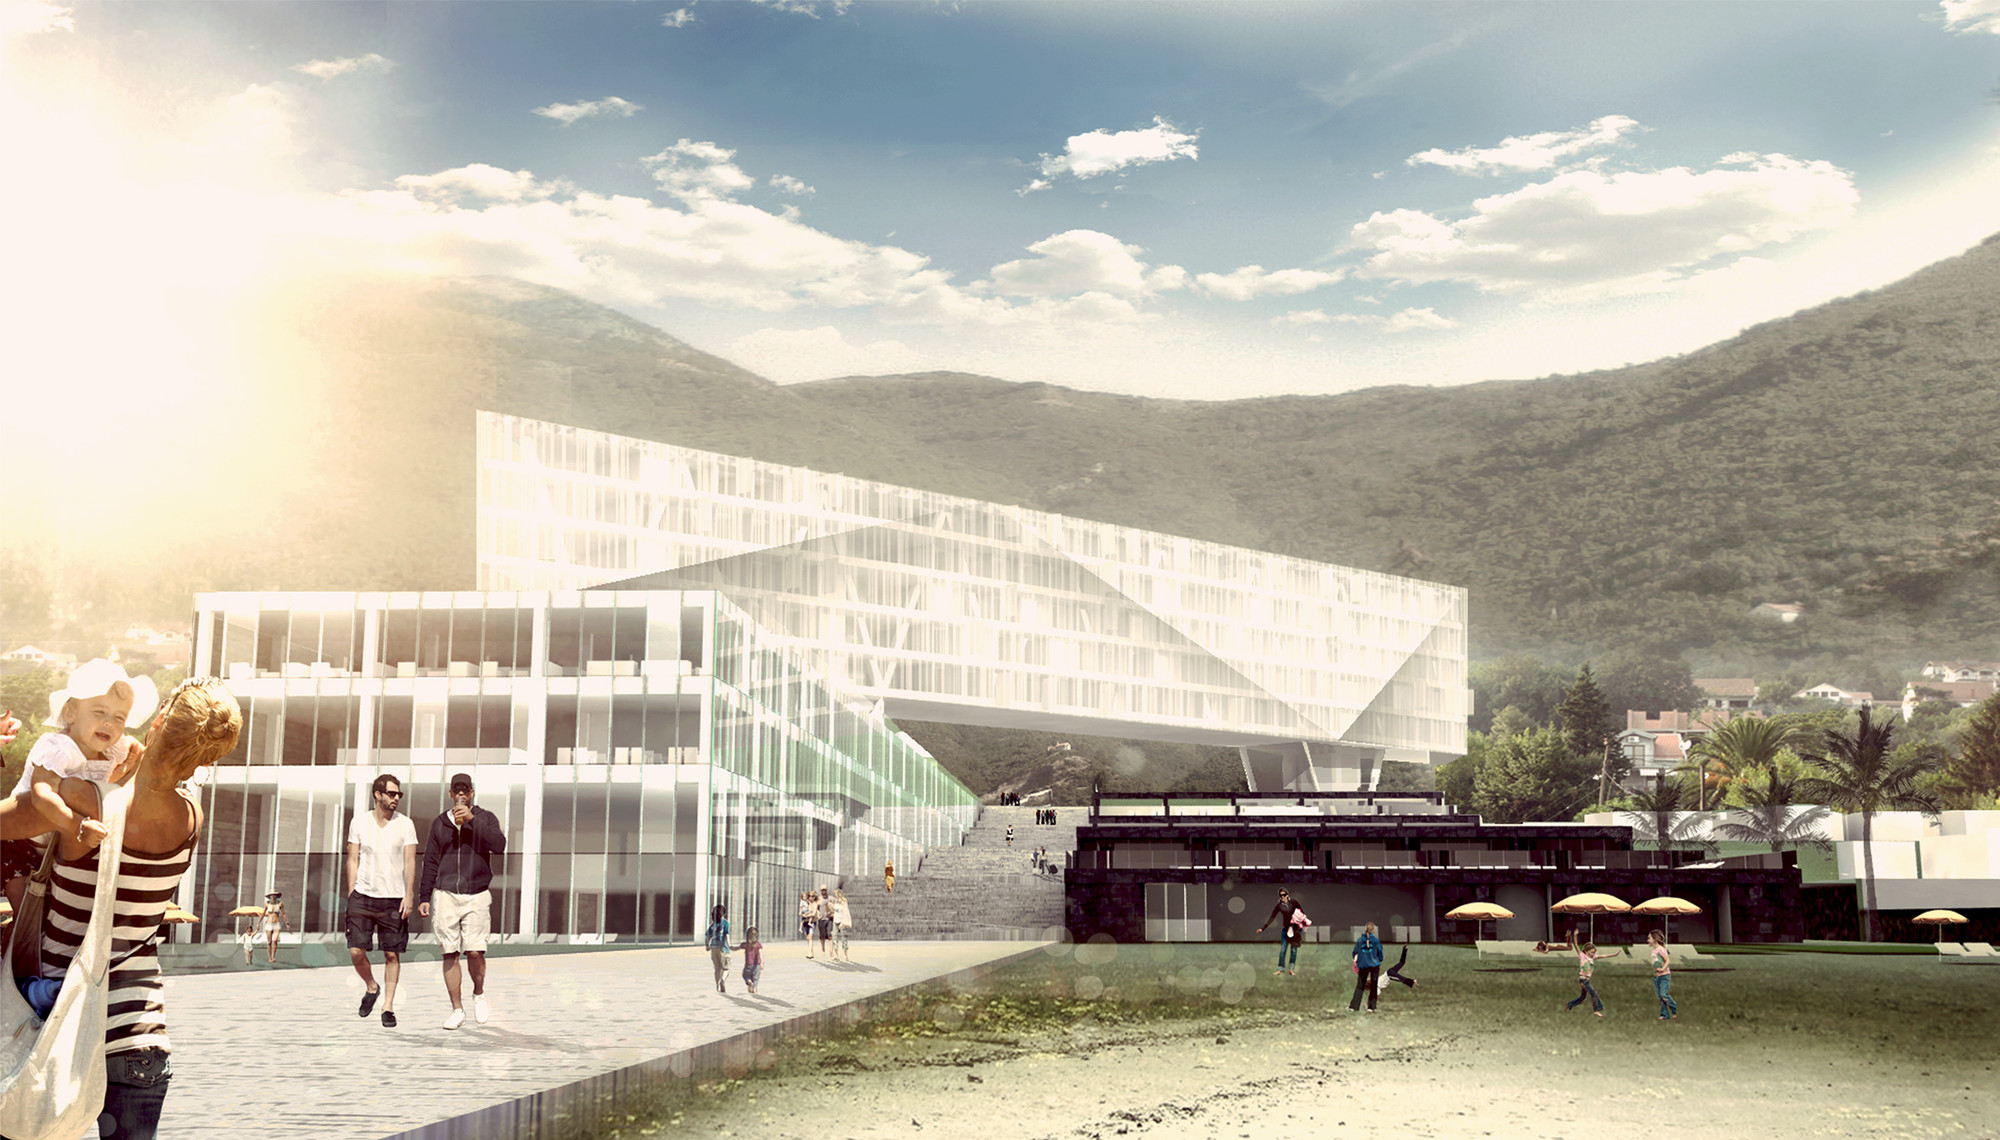 Hotel in Montenegro Competition Entry / Kana Arhitekti, Courtesy of Kana Arhitekti